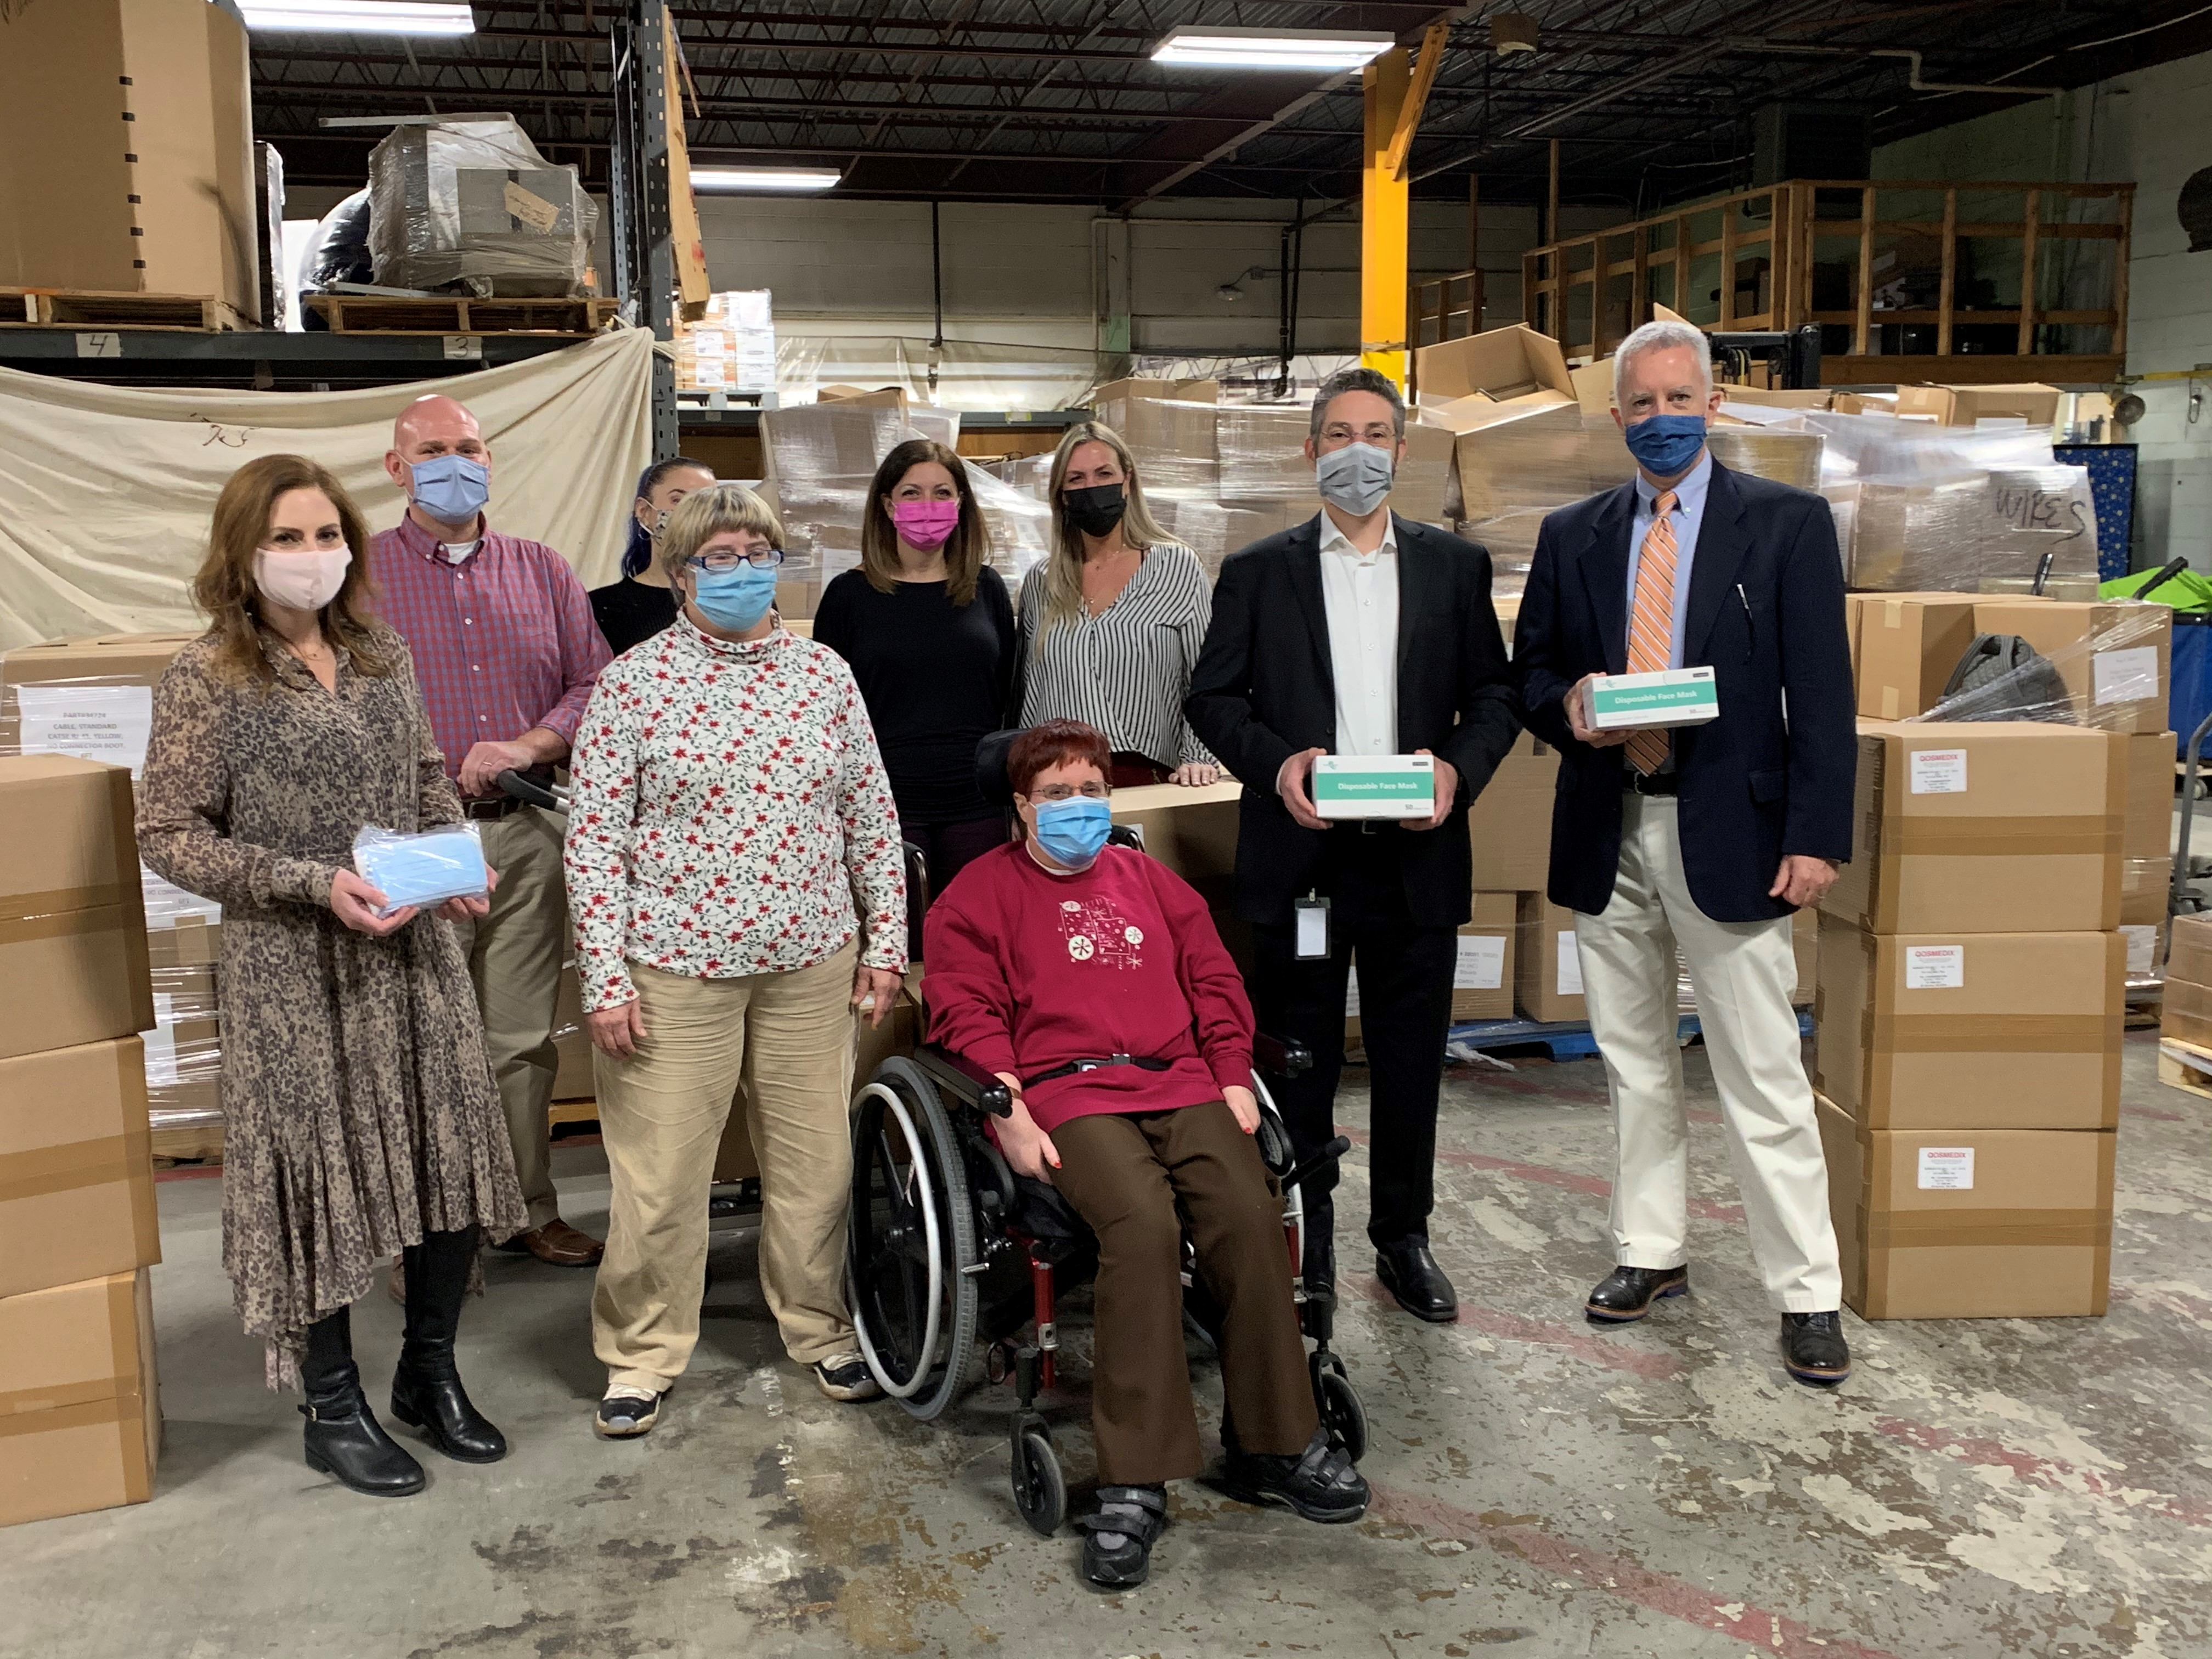 The Qosina team donates 240 much-needed boxes of ear loop masks to AHRC Suffolk.